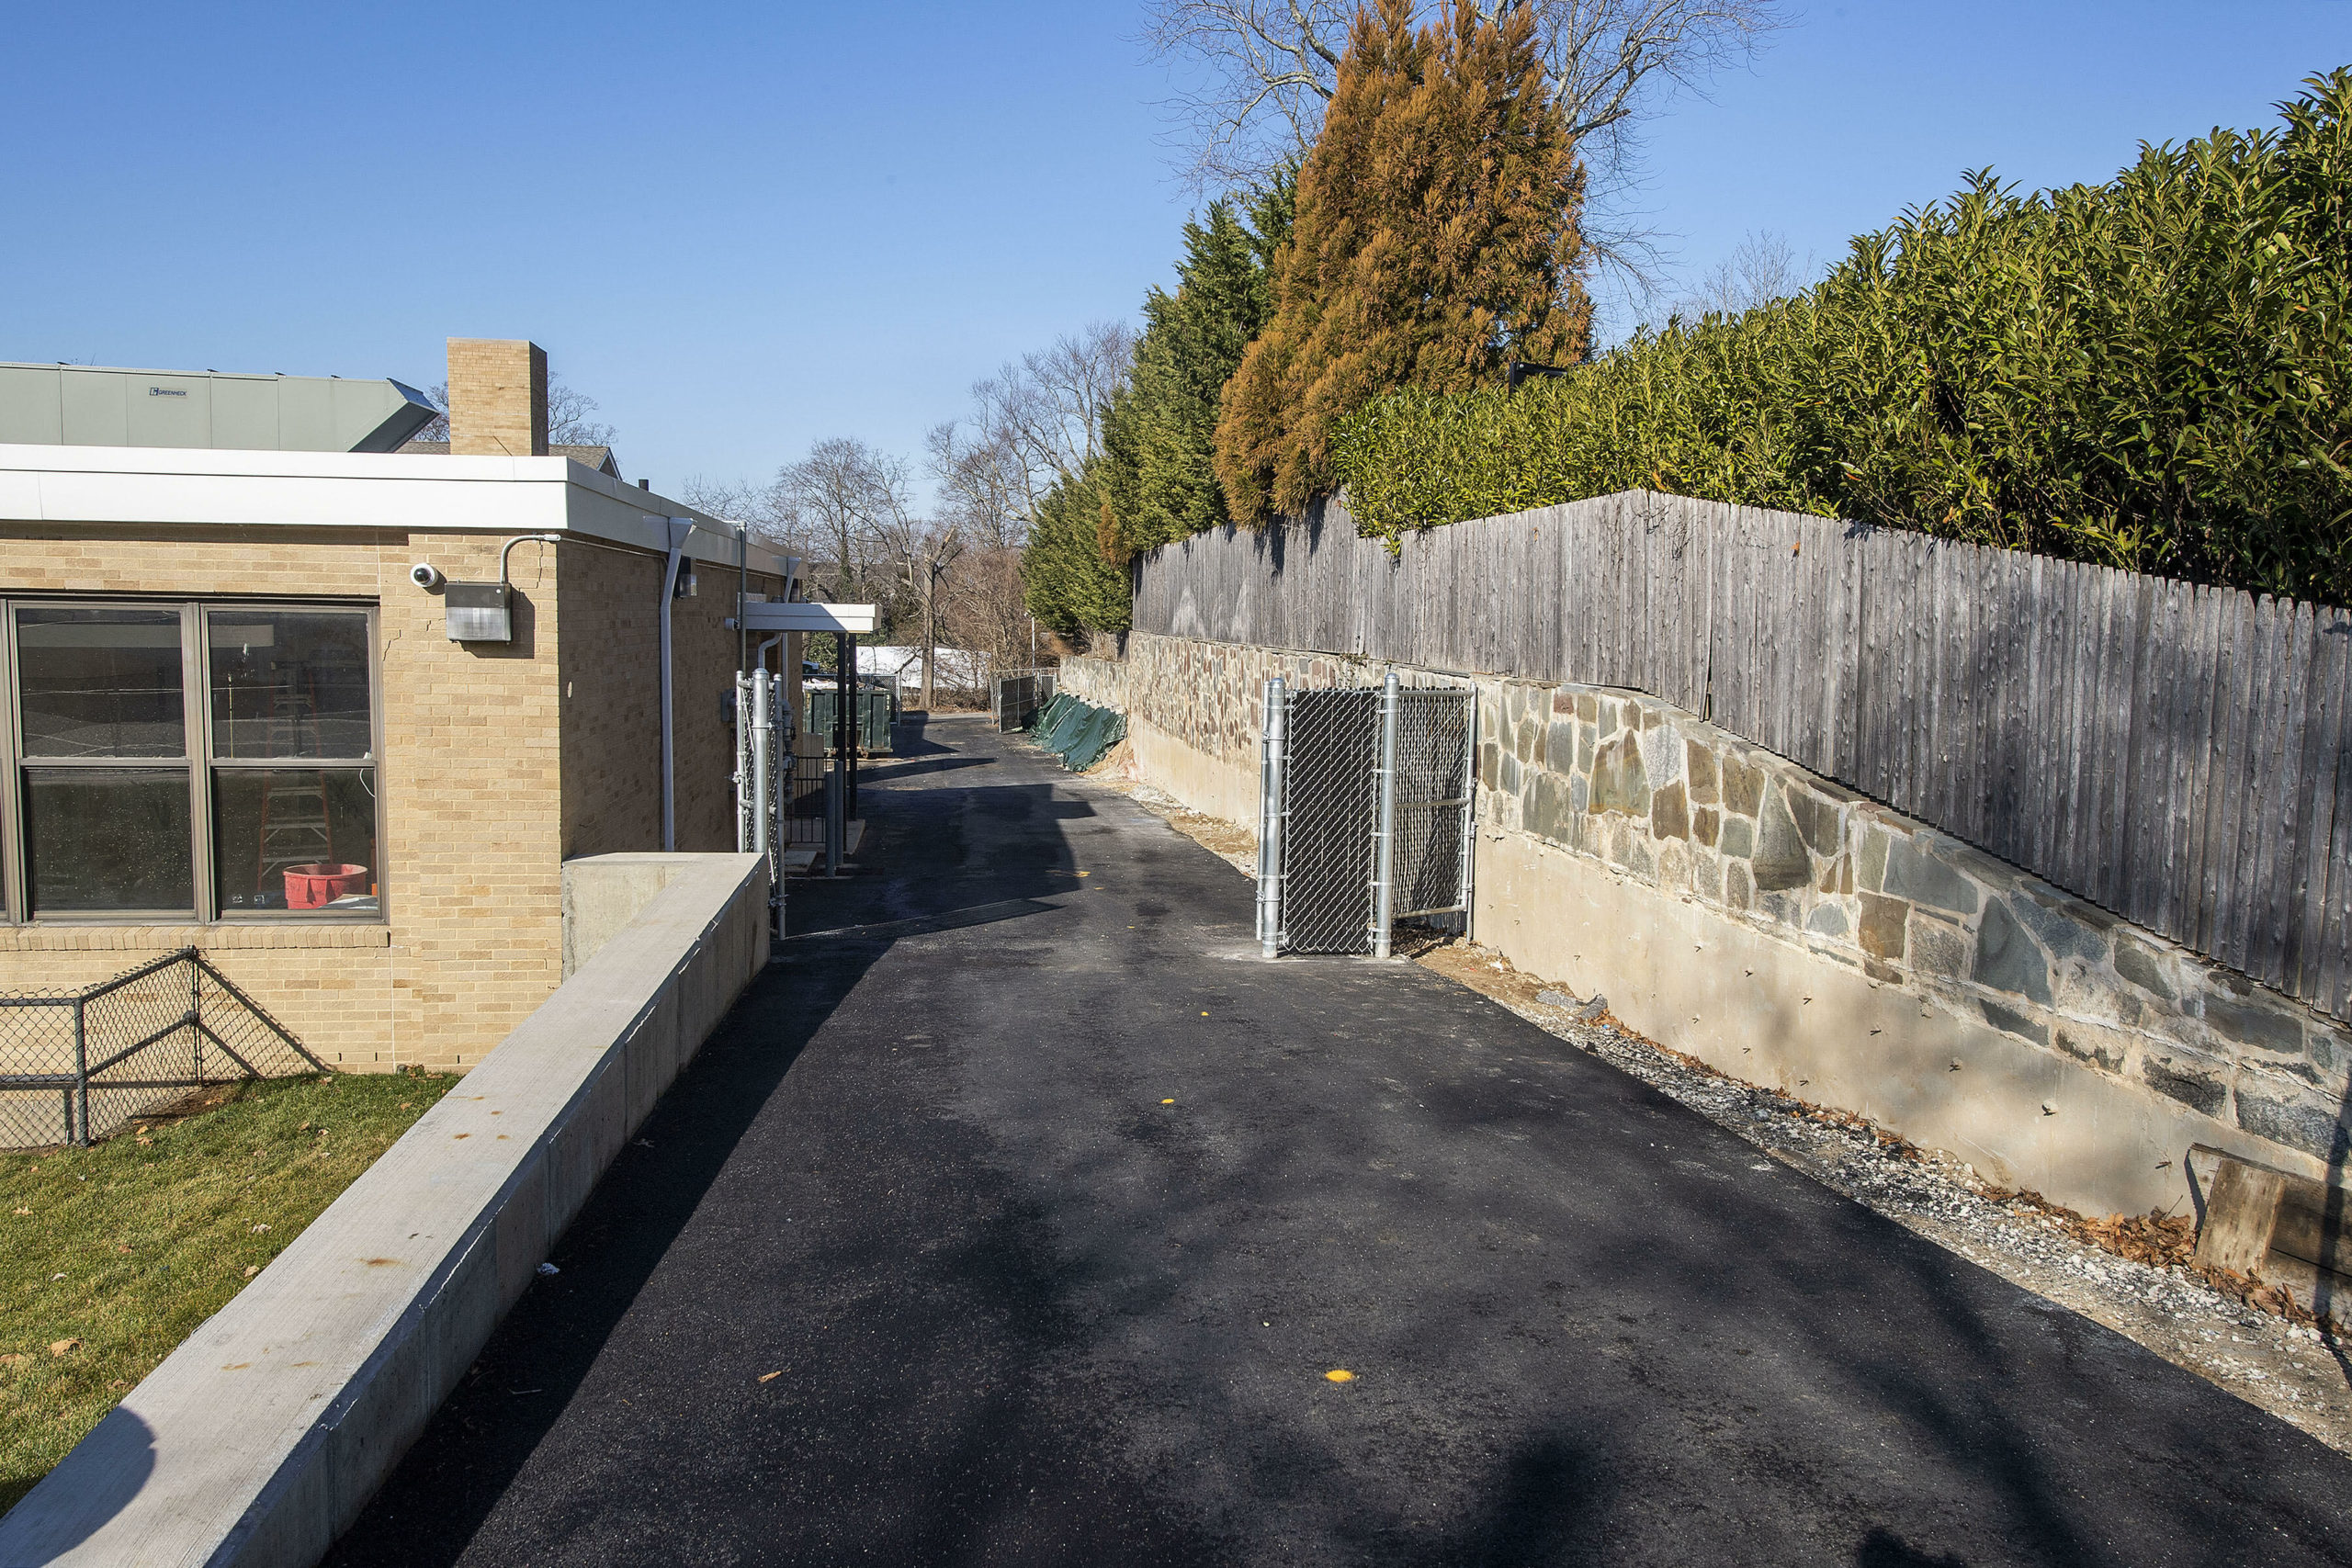 Soil found last spring near an old retaining wall on the Sag Harbor Learning Center property contained trace amounts of arsenic it was revealed to members of the Sag Harbor School Board of Education this week.